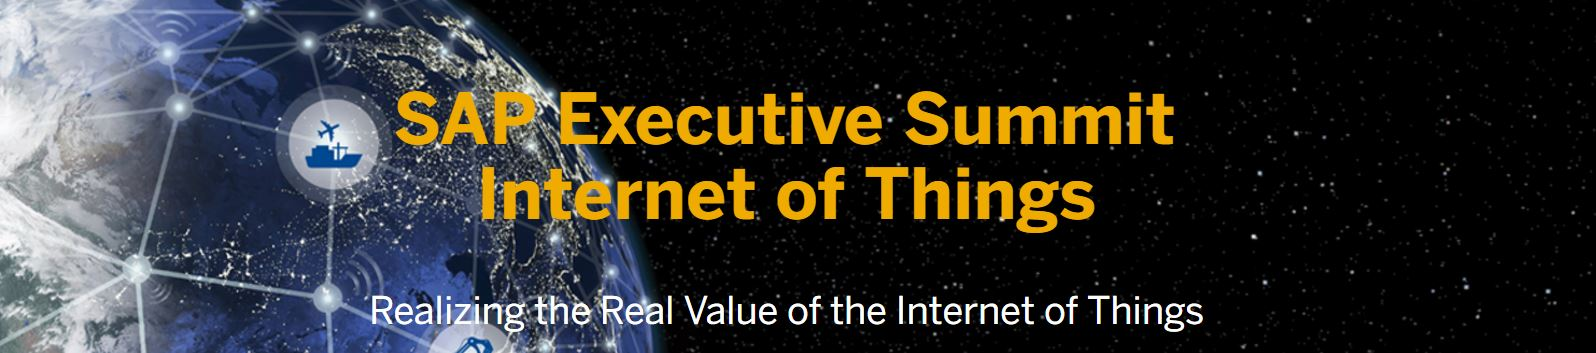 SAP Executive Summit Internet of Things 2016